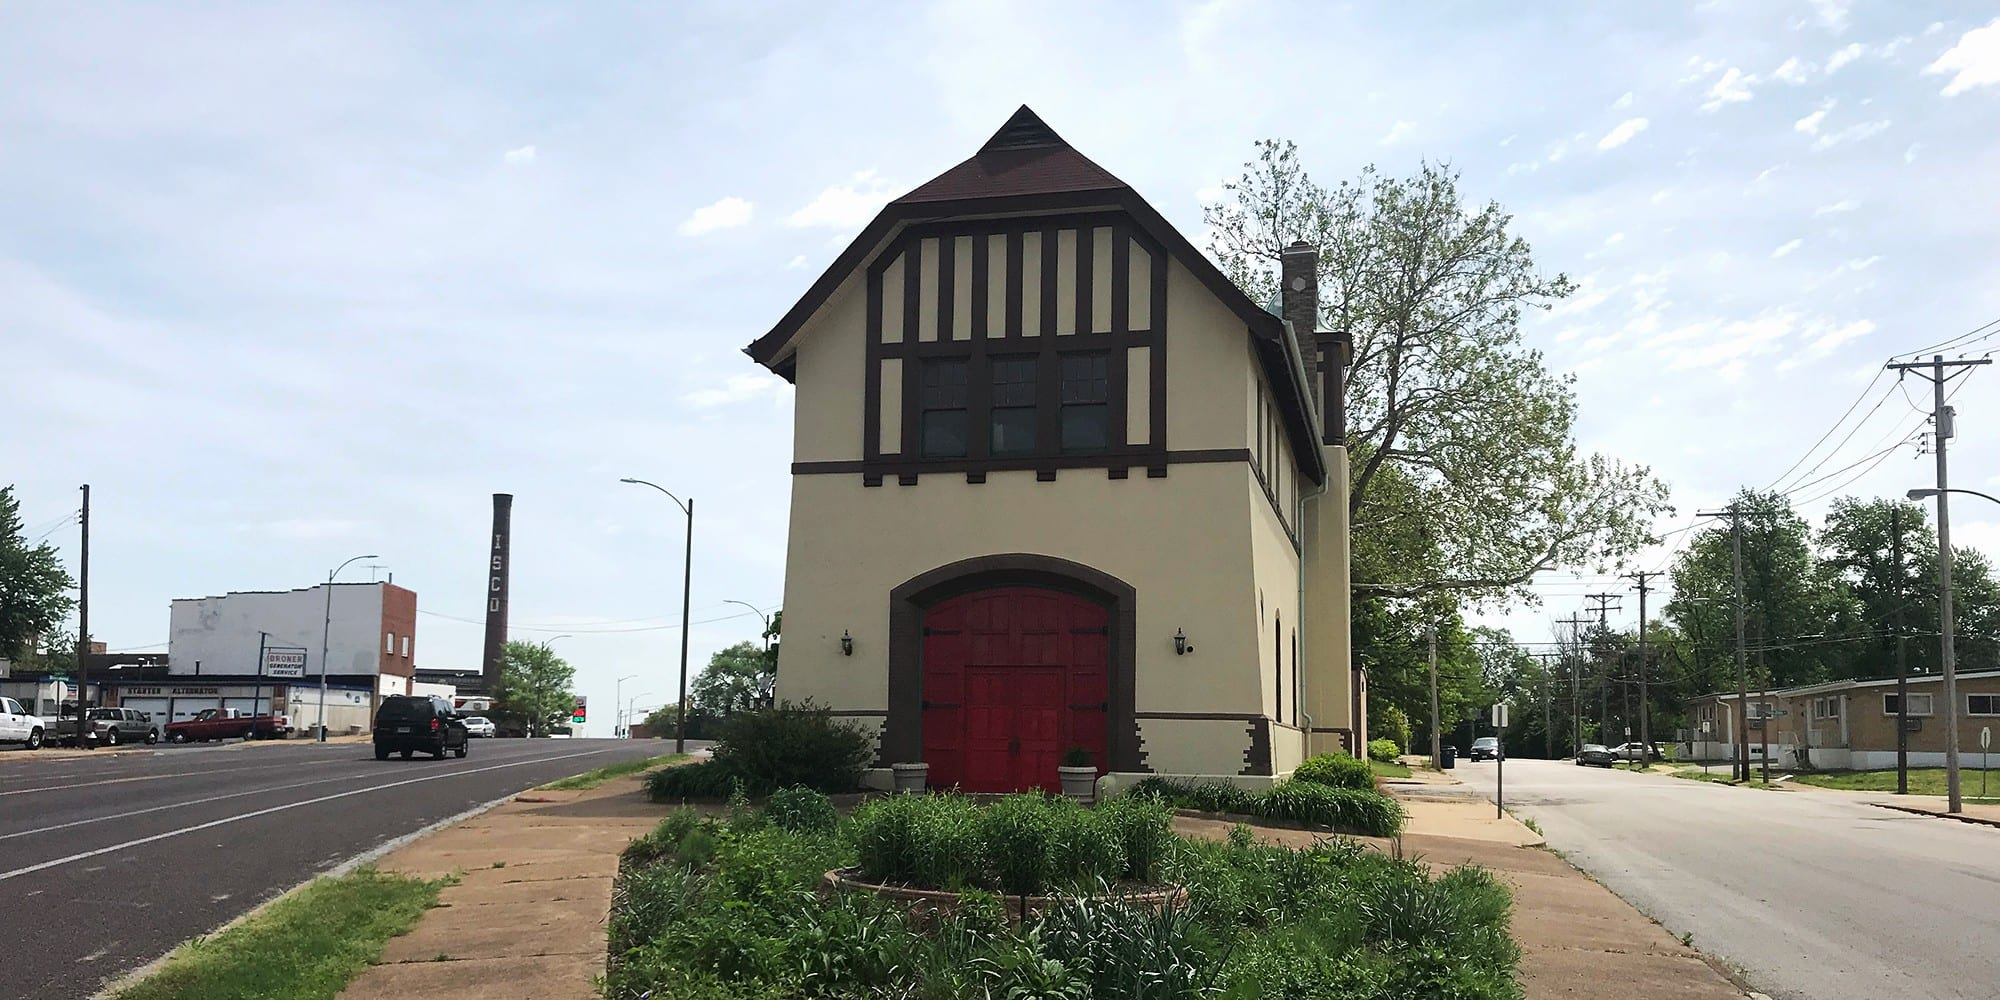 The South Broadway Firehouse in Marine Villa. Photo by Nick Findley.